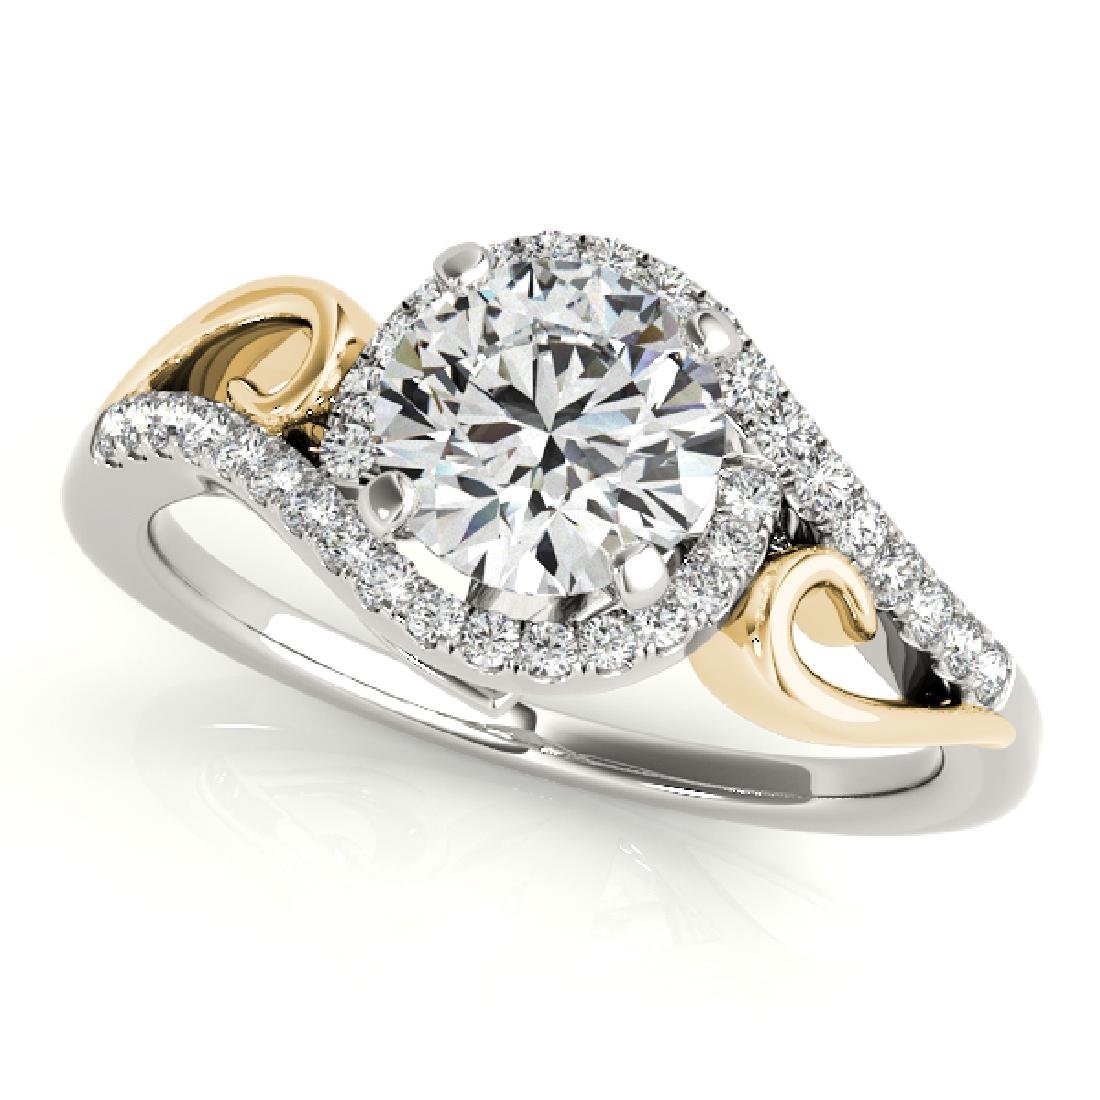 CERTIFIED TWO TONE GOLD 1.00 CT G-H/VS-SI1 DIAMOND HALO